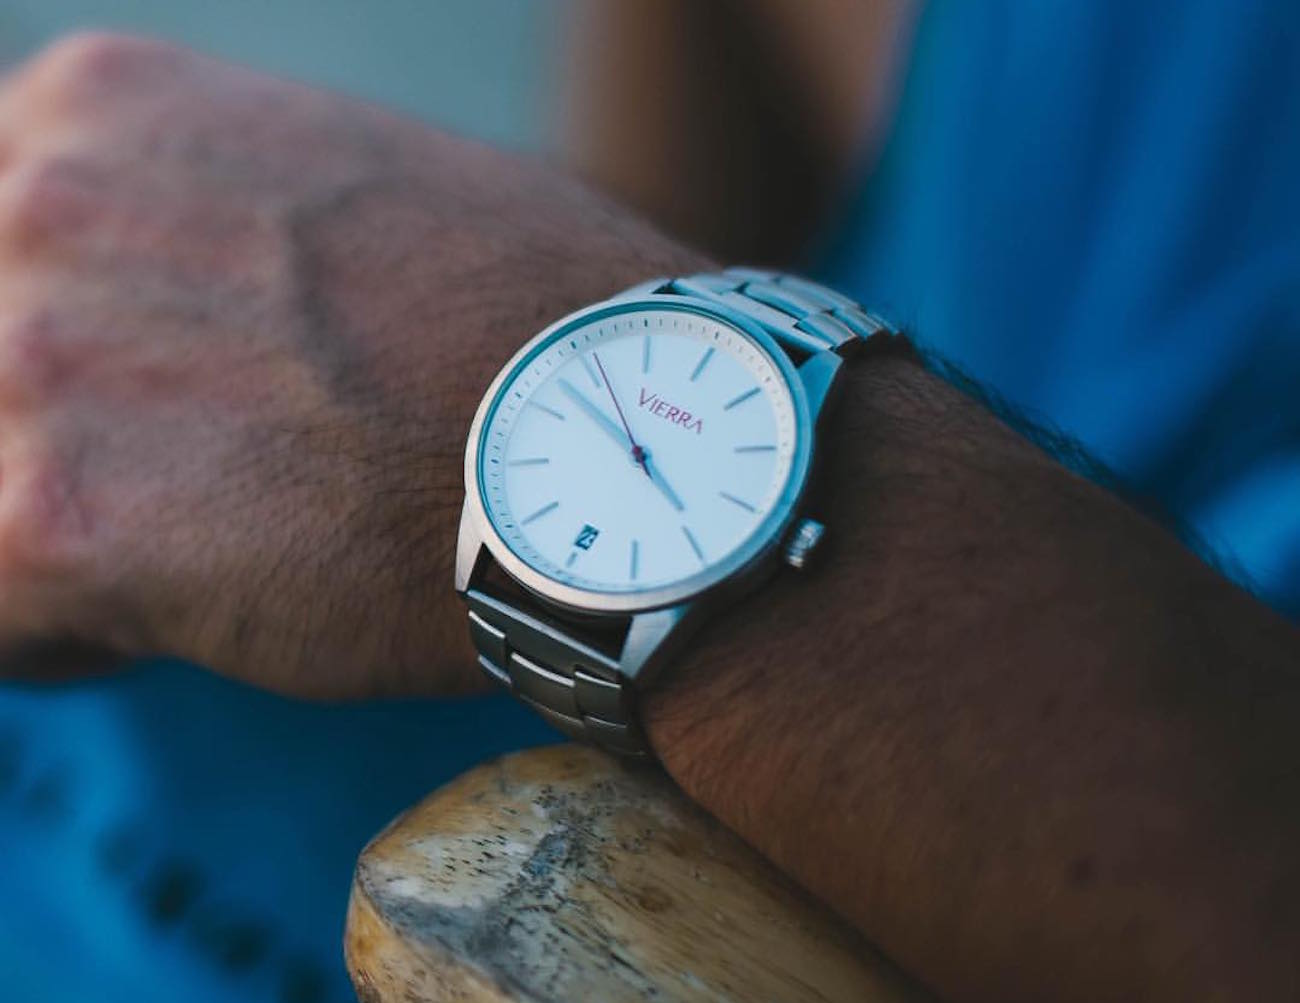 Vierra The Best Affordable Watch Ever Made